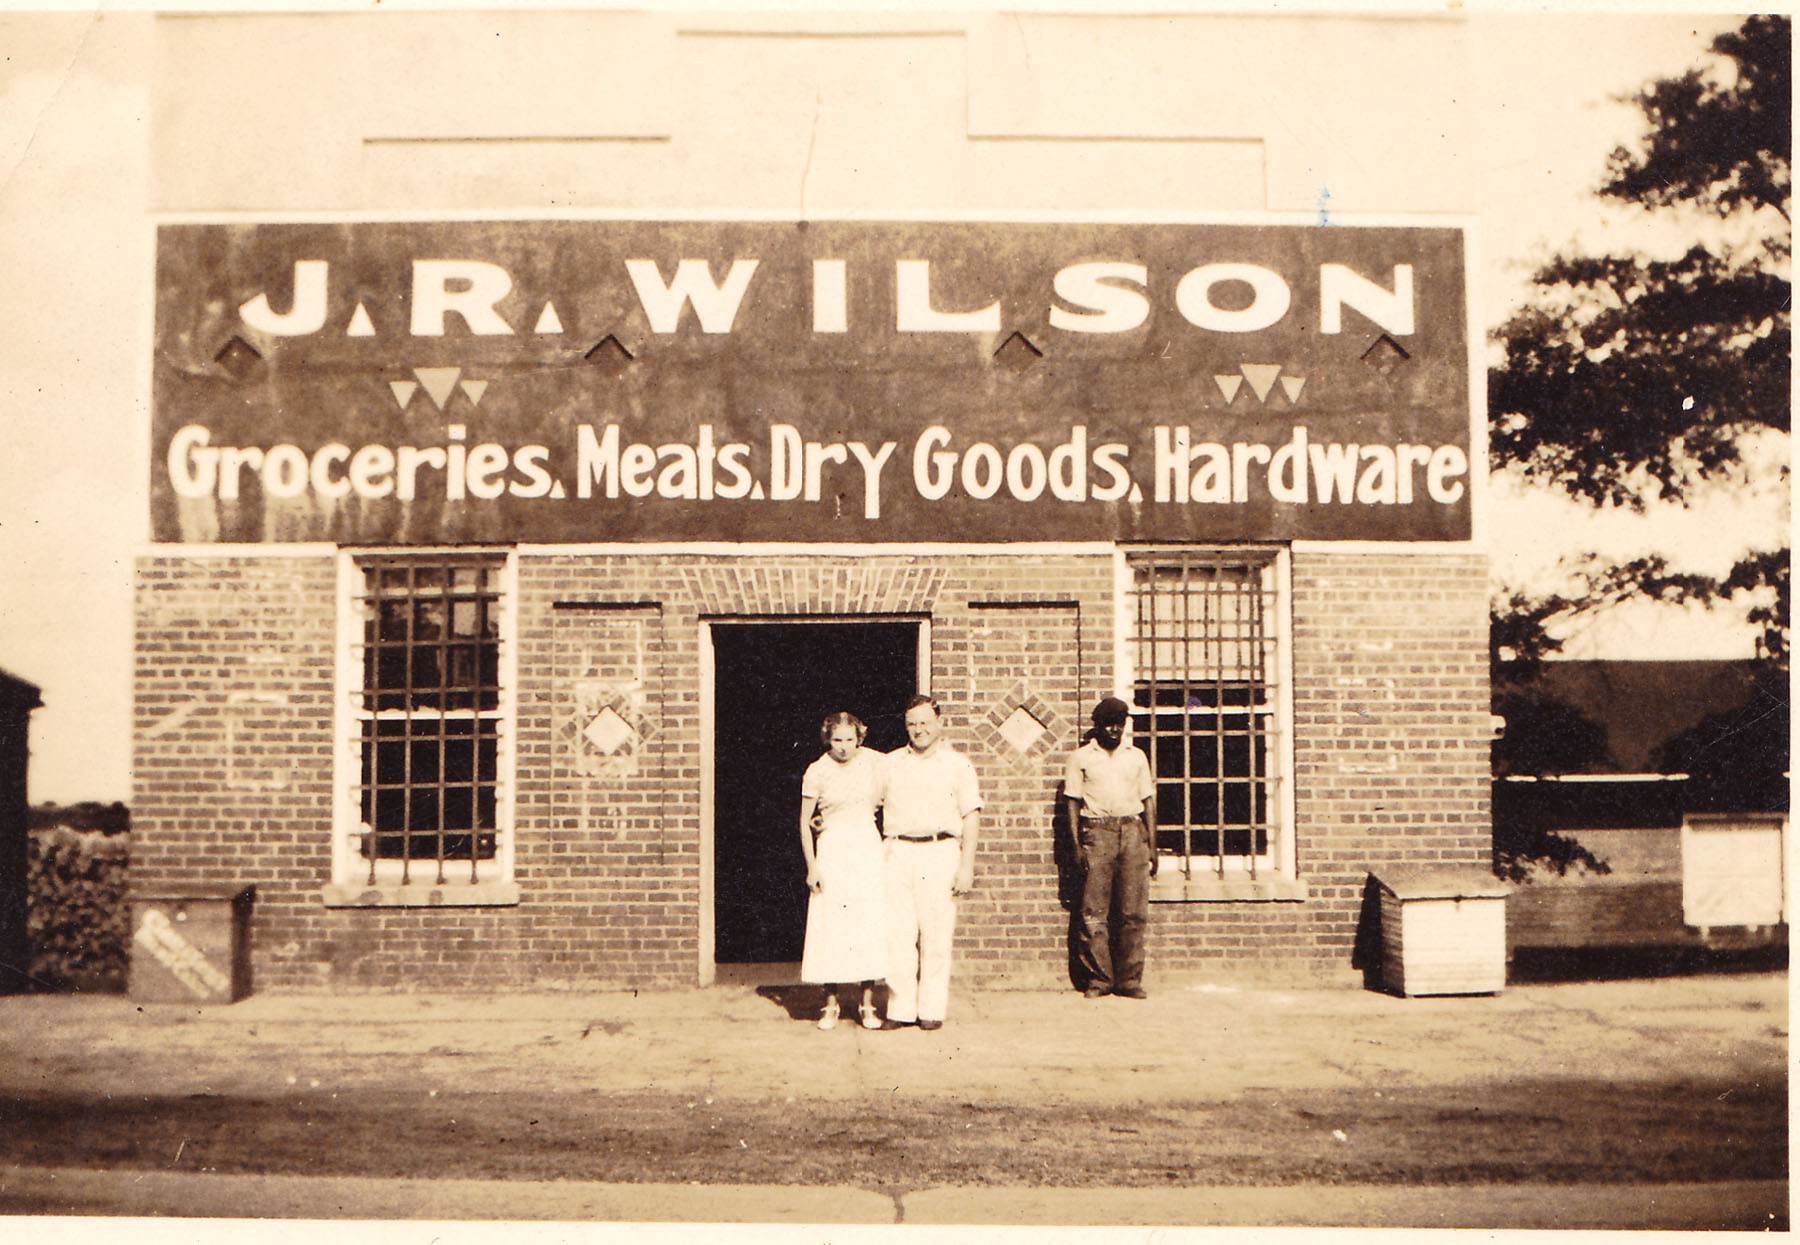 Roger Wilson's First Grocery Store.  Photo courtesy of Roger Wilson family.